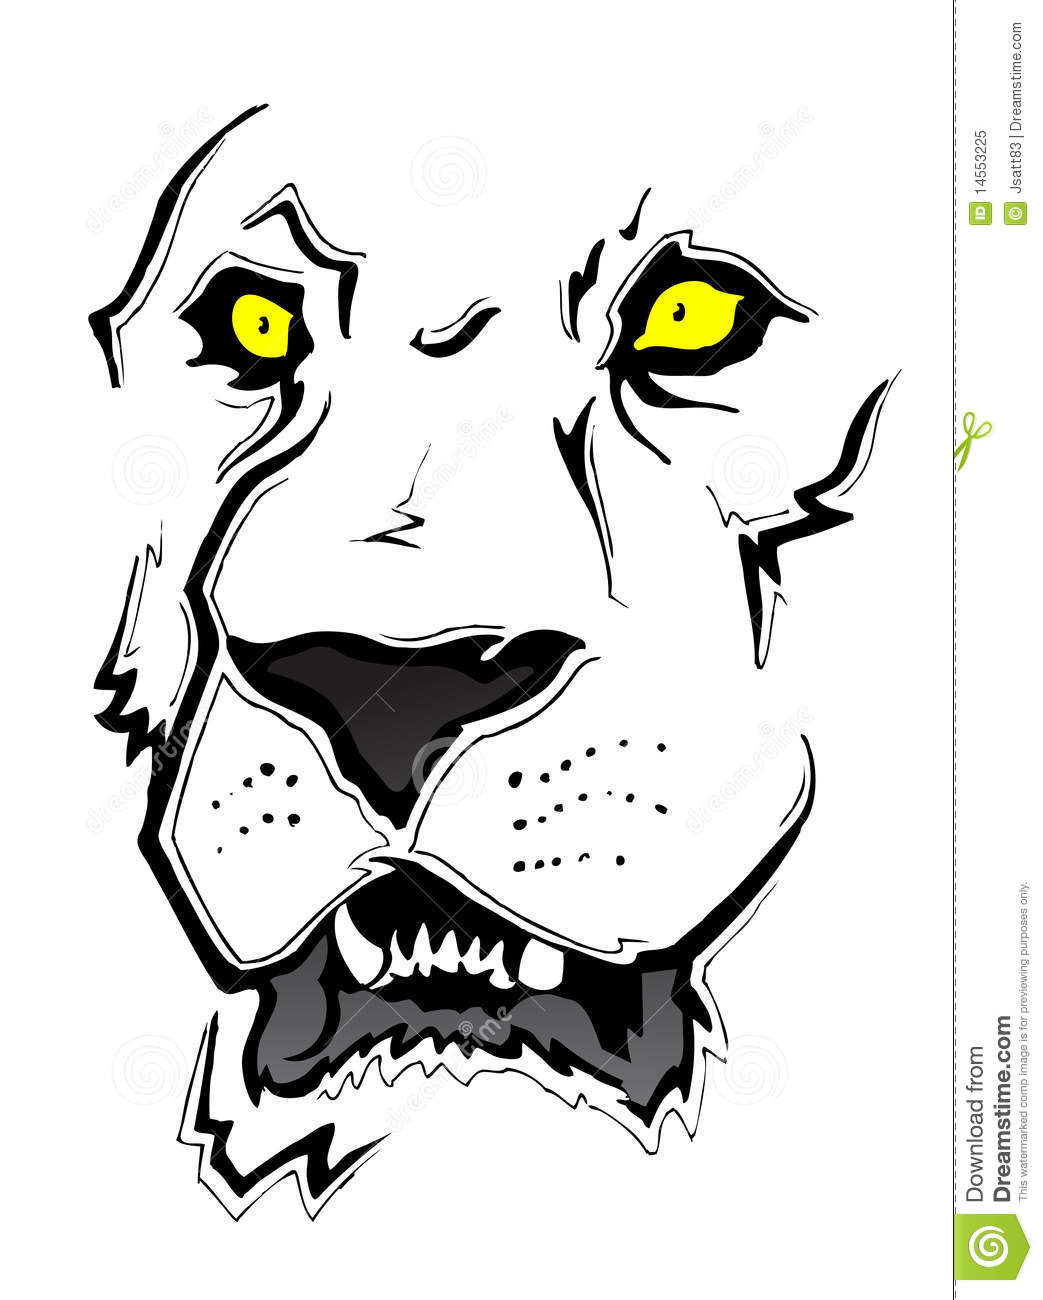 Line Drawing Lion Face : Lion face sketch royalty free stock photo image